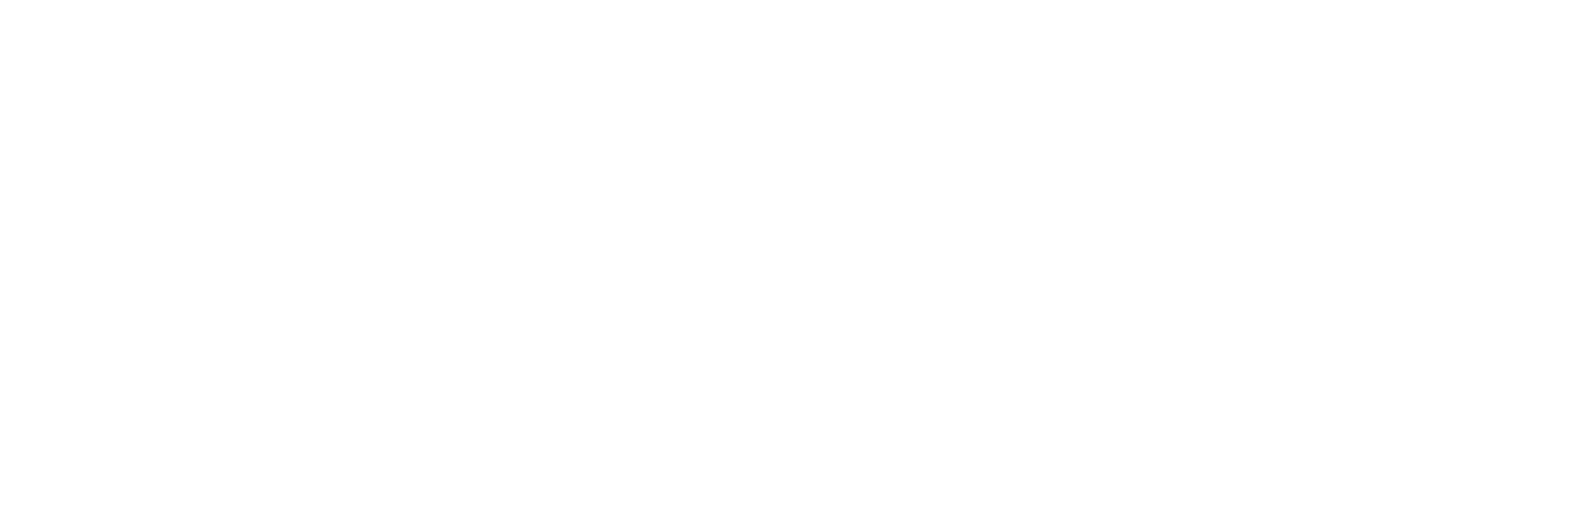 NordicModding Team